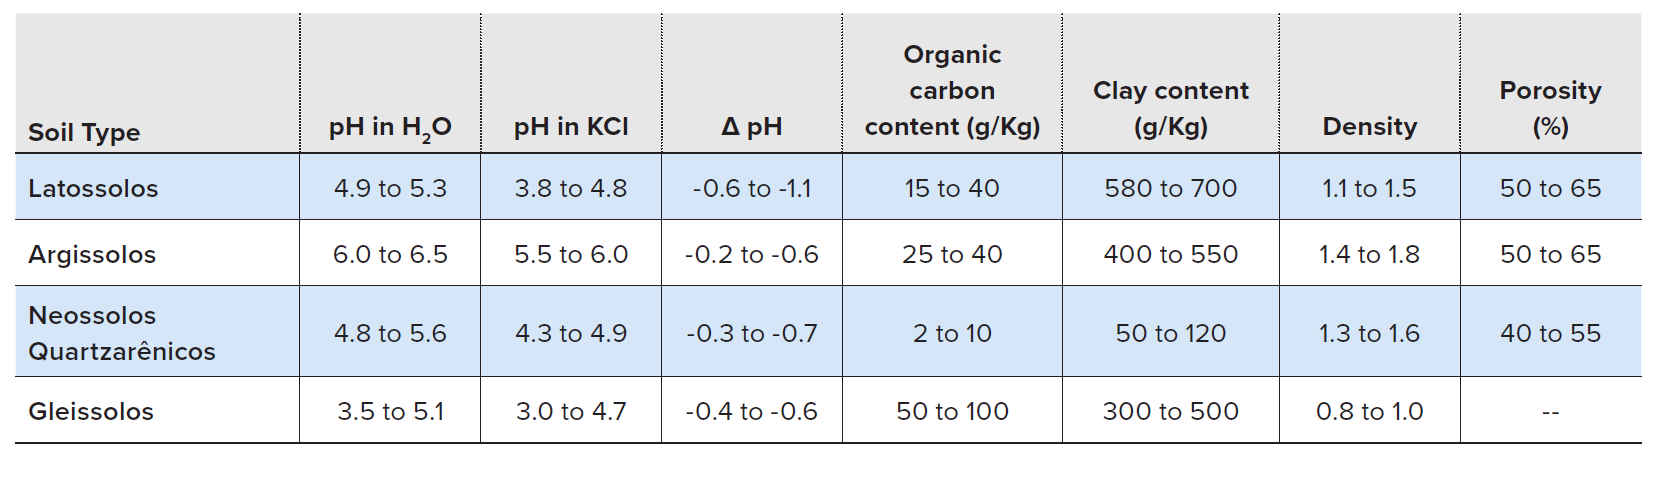 Range of values of key physicochemical characteristics expected for each soil type when collected from the A horizon (0-12 cm).